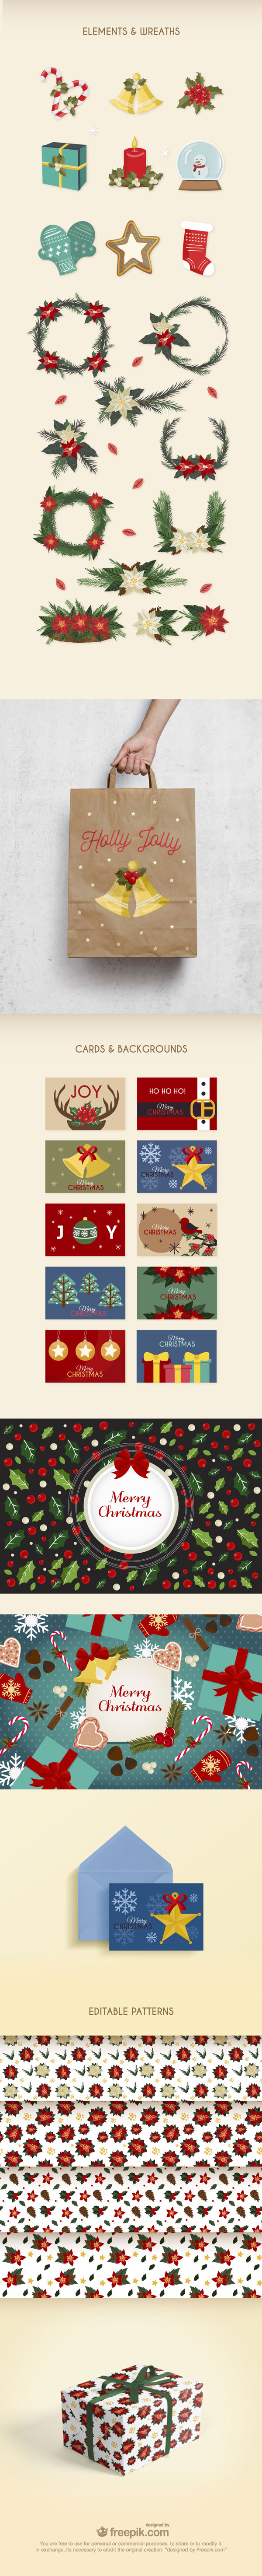 Free Christmas Vector Set (Cards, Backgrounds, Patterns etc.)